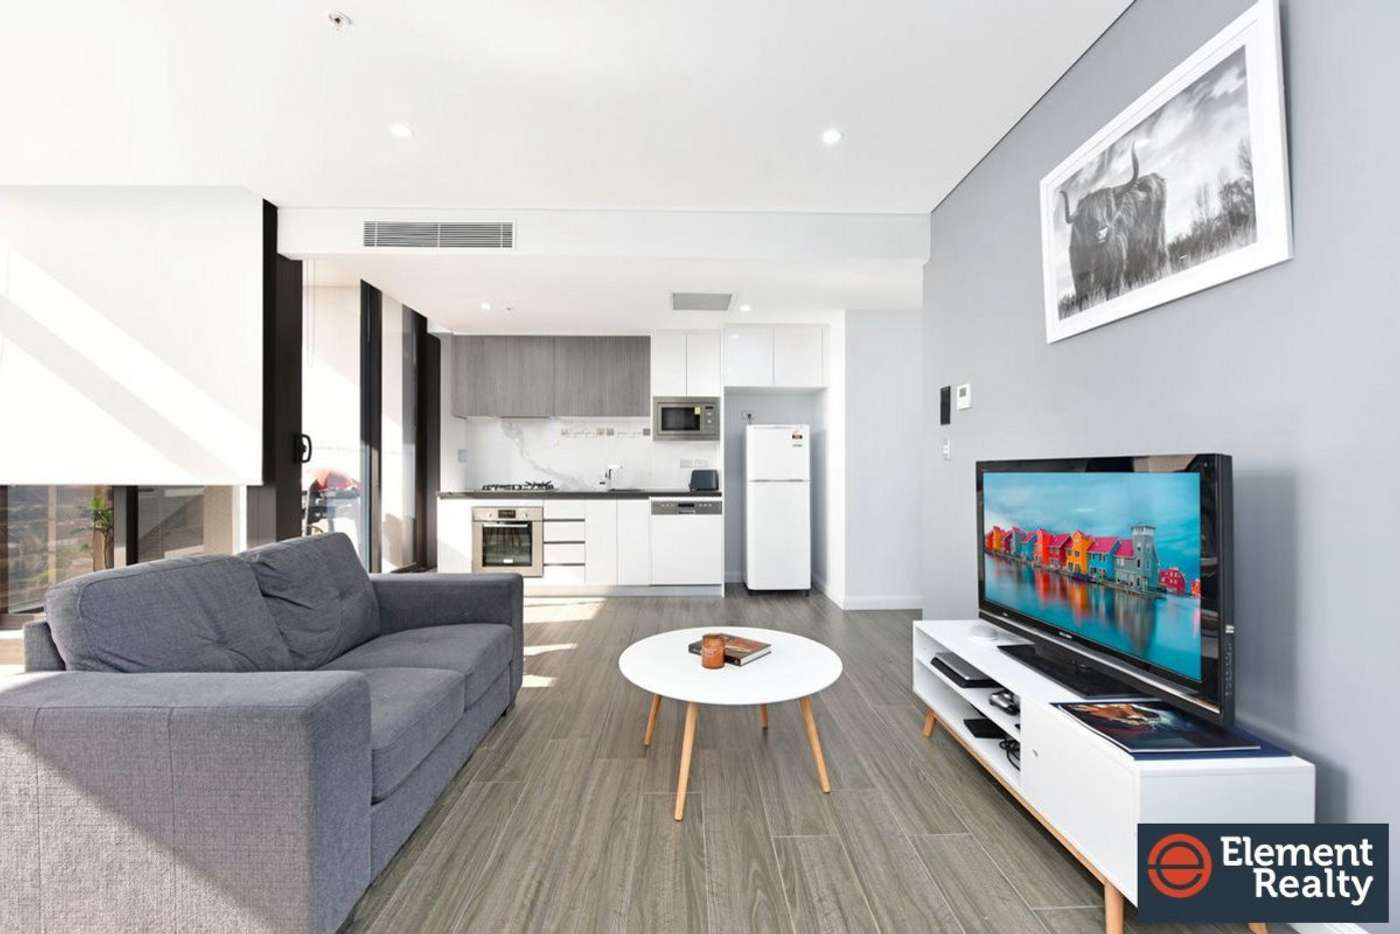 Main view of Homely apartment listing, 2704/330 Church Street, Parramatta NSW 2150